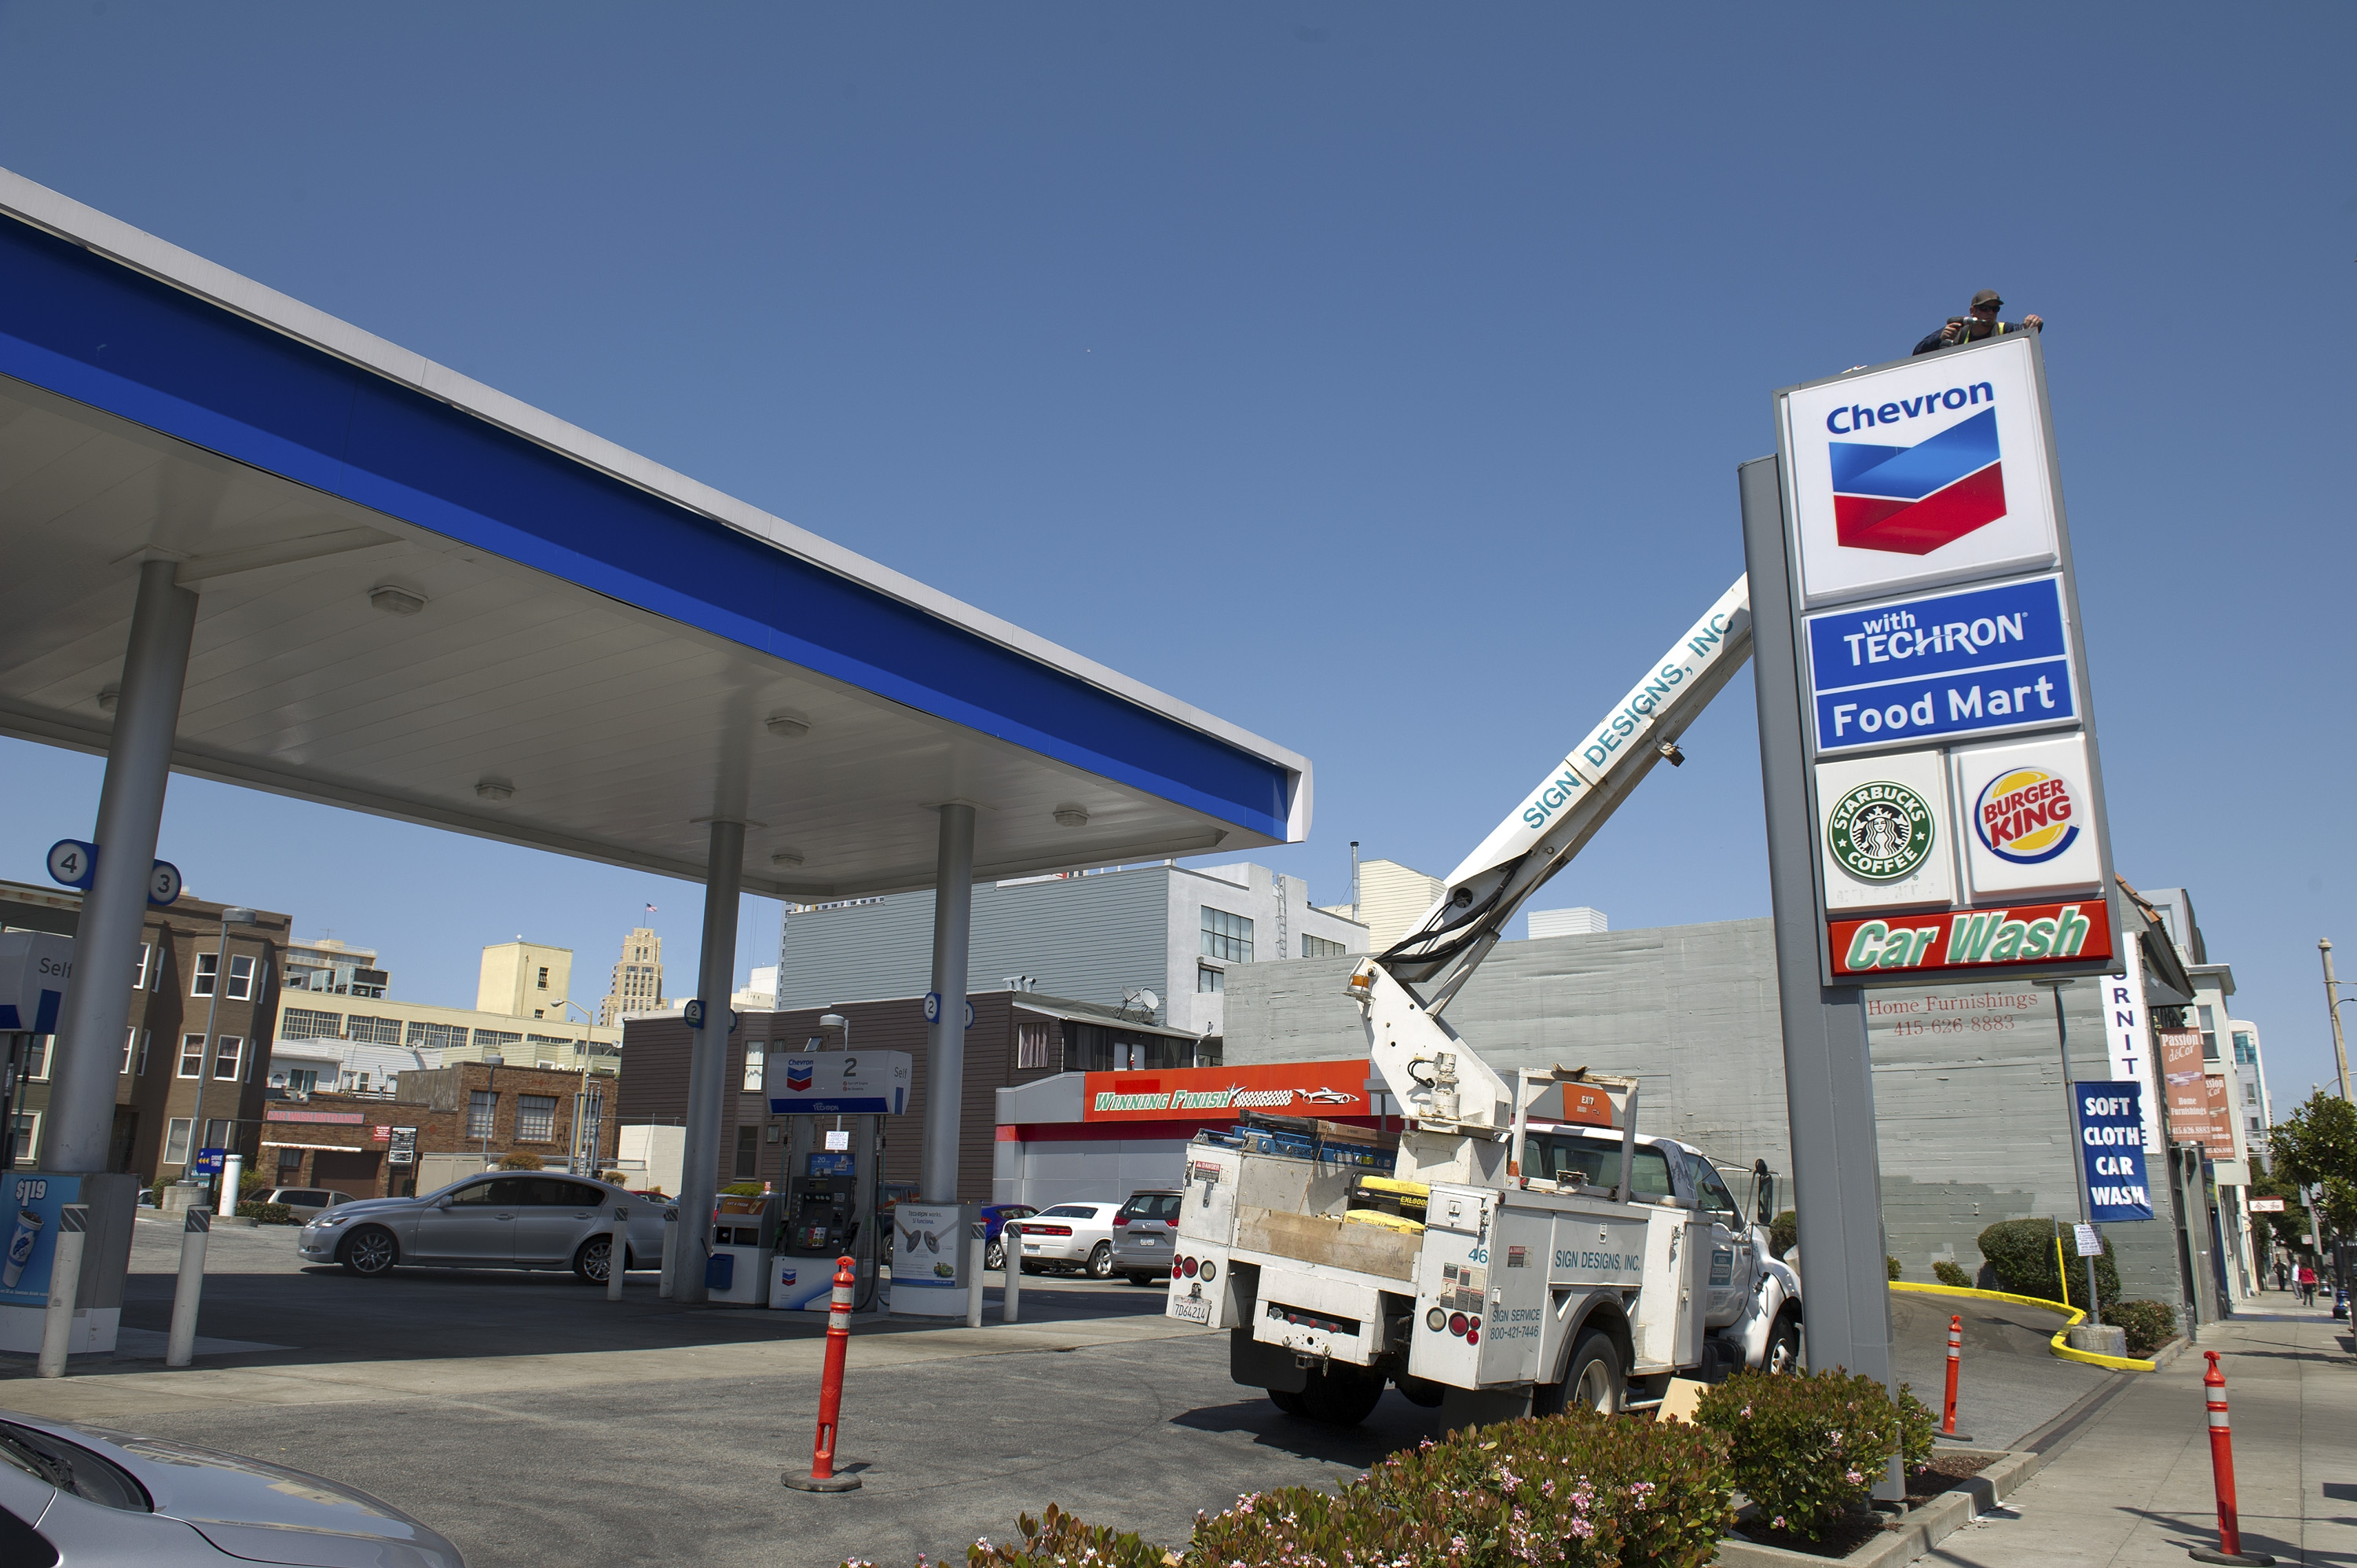 <strong>Chevron</strong> Chevron, the U.S.'s second-largest oil company after Exxon Mobil, posted a 5.4% decrease in total revenue in 2013, to $228.9 billion. Chevron Chief Executive John Watson said results were hurt by lower global crude oil prices and refining margins, as well as fewer asset sale gains and higher expenses. The company expects production will increase in 2015 and beyond. Chevron says it has also made progress with its projects in Australia and the Gulf of Mexico.